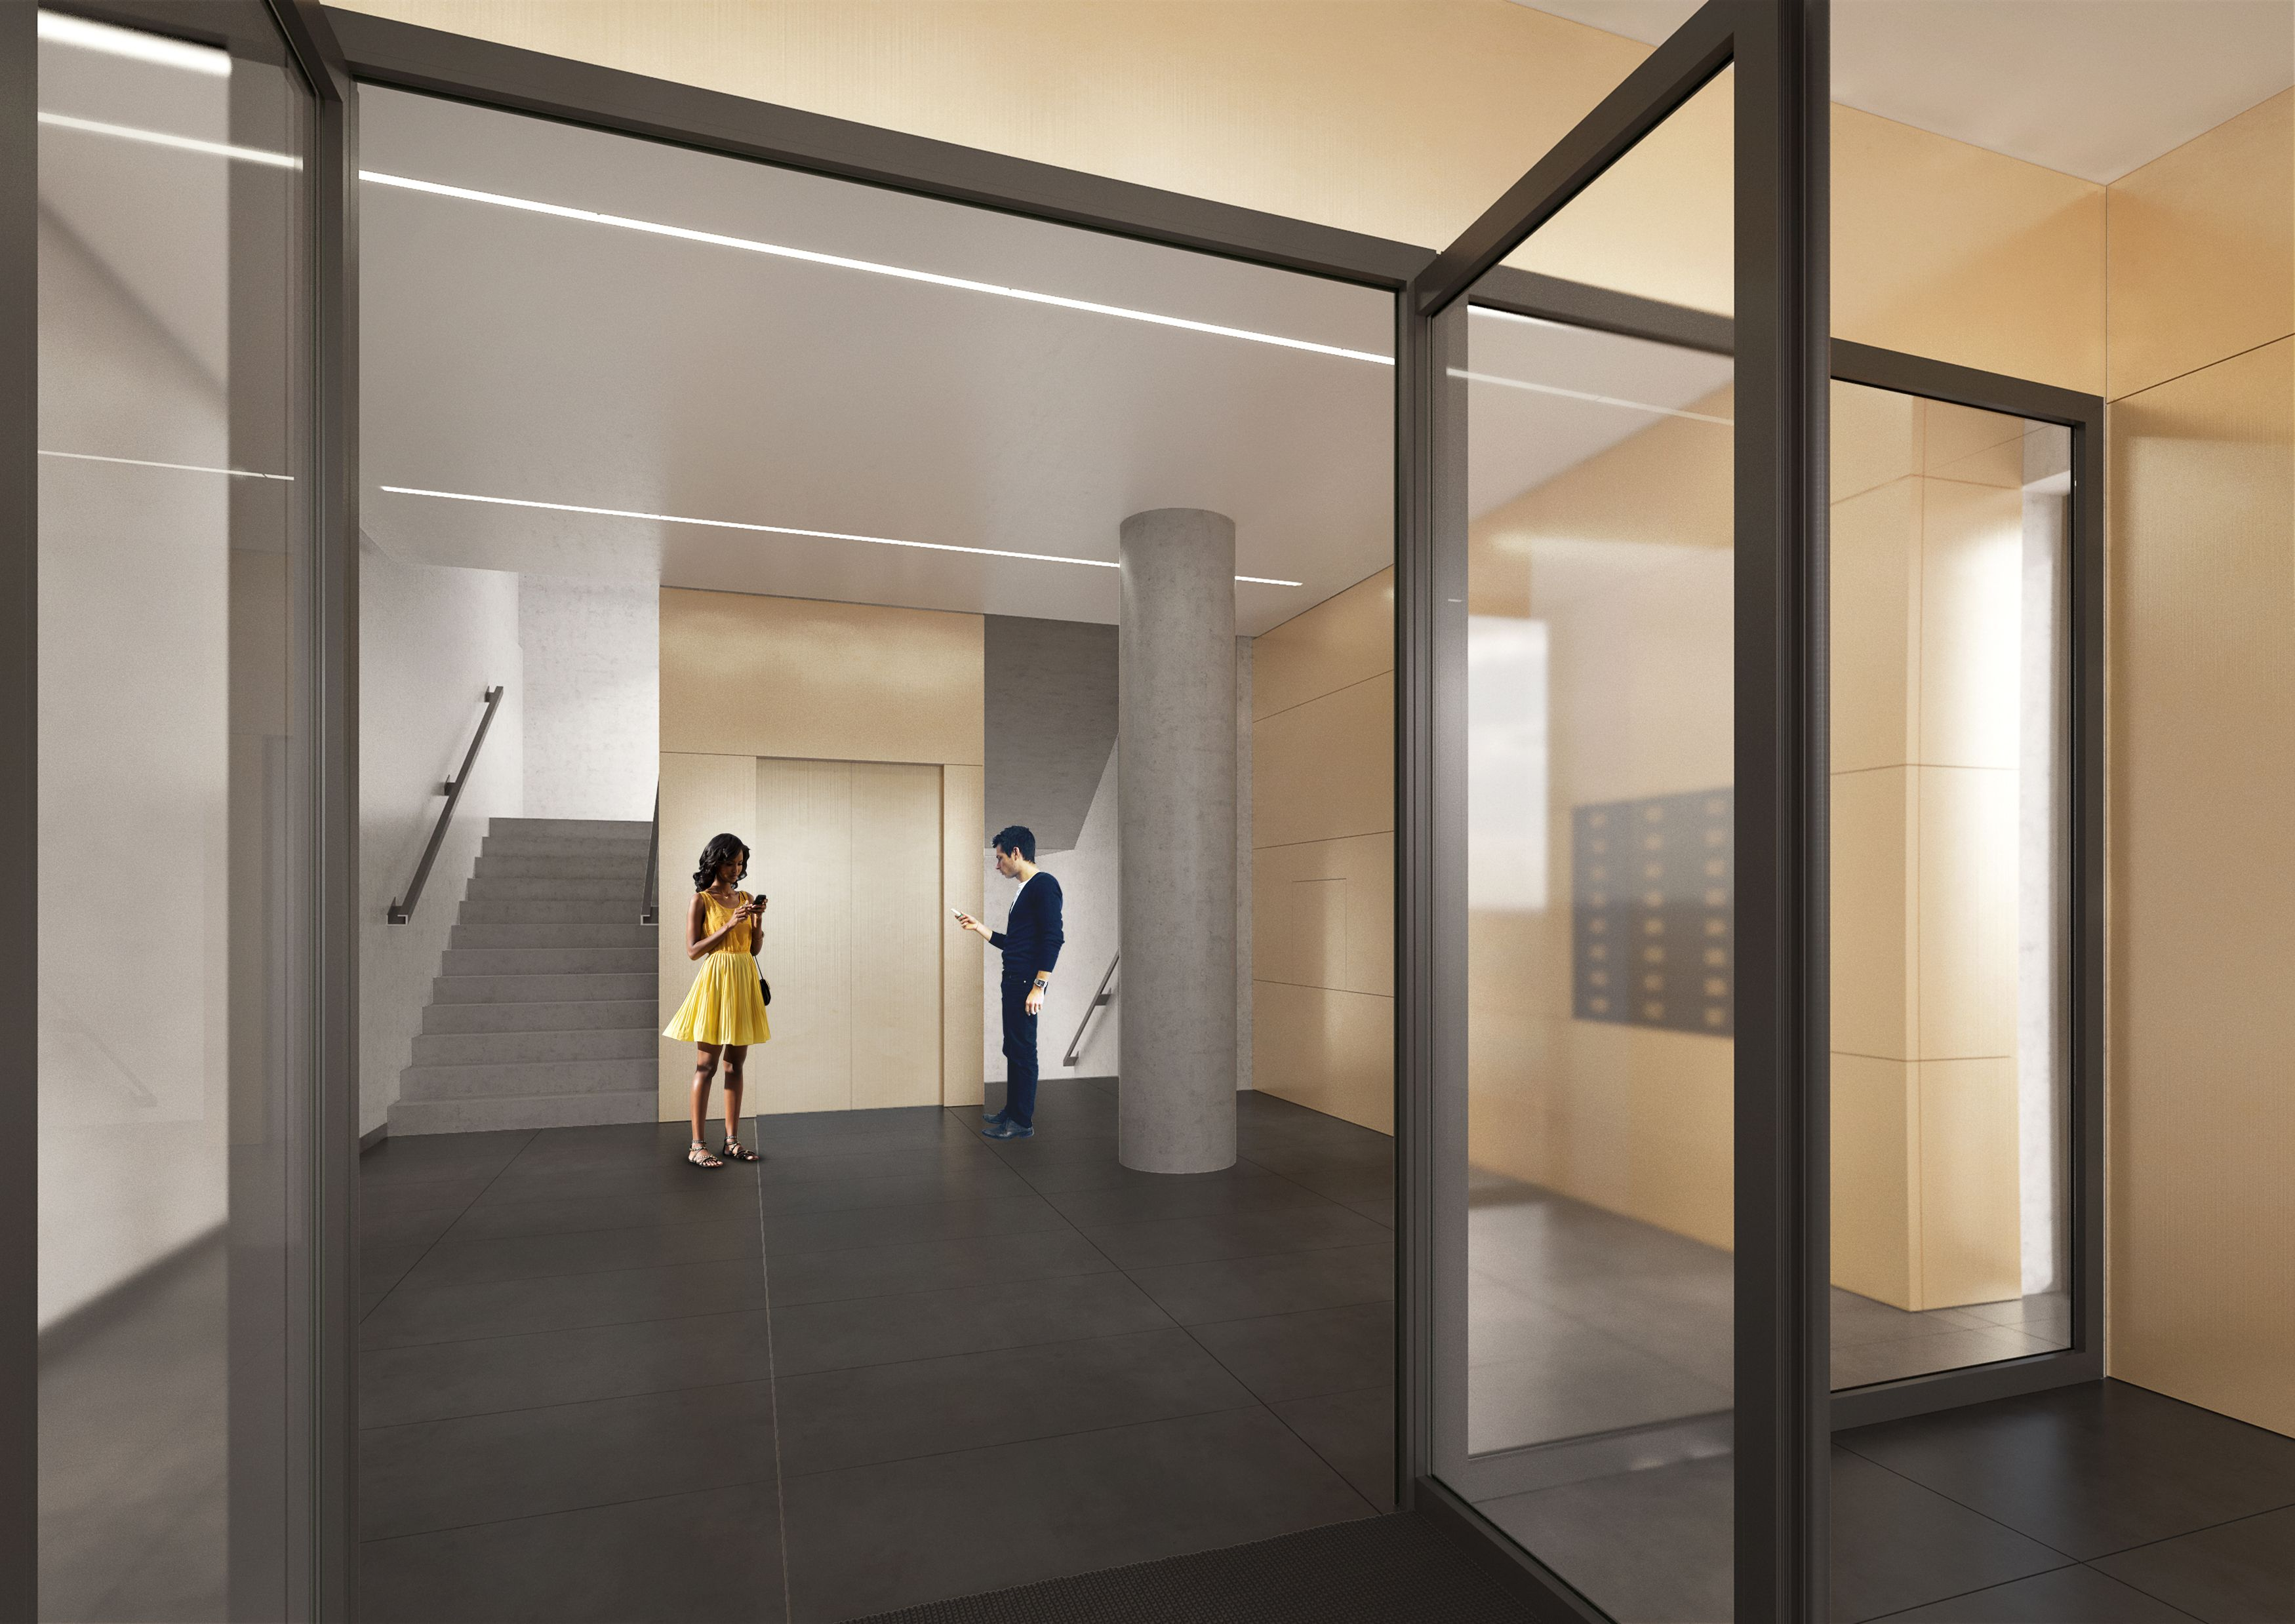 Entrance space in MG8 building. Design by Easst.com. 2017